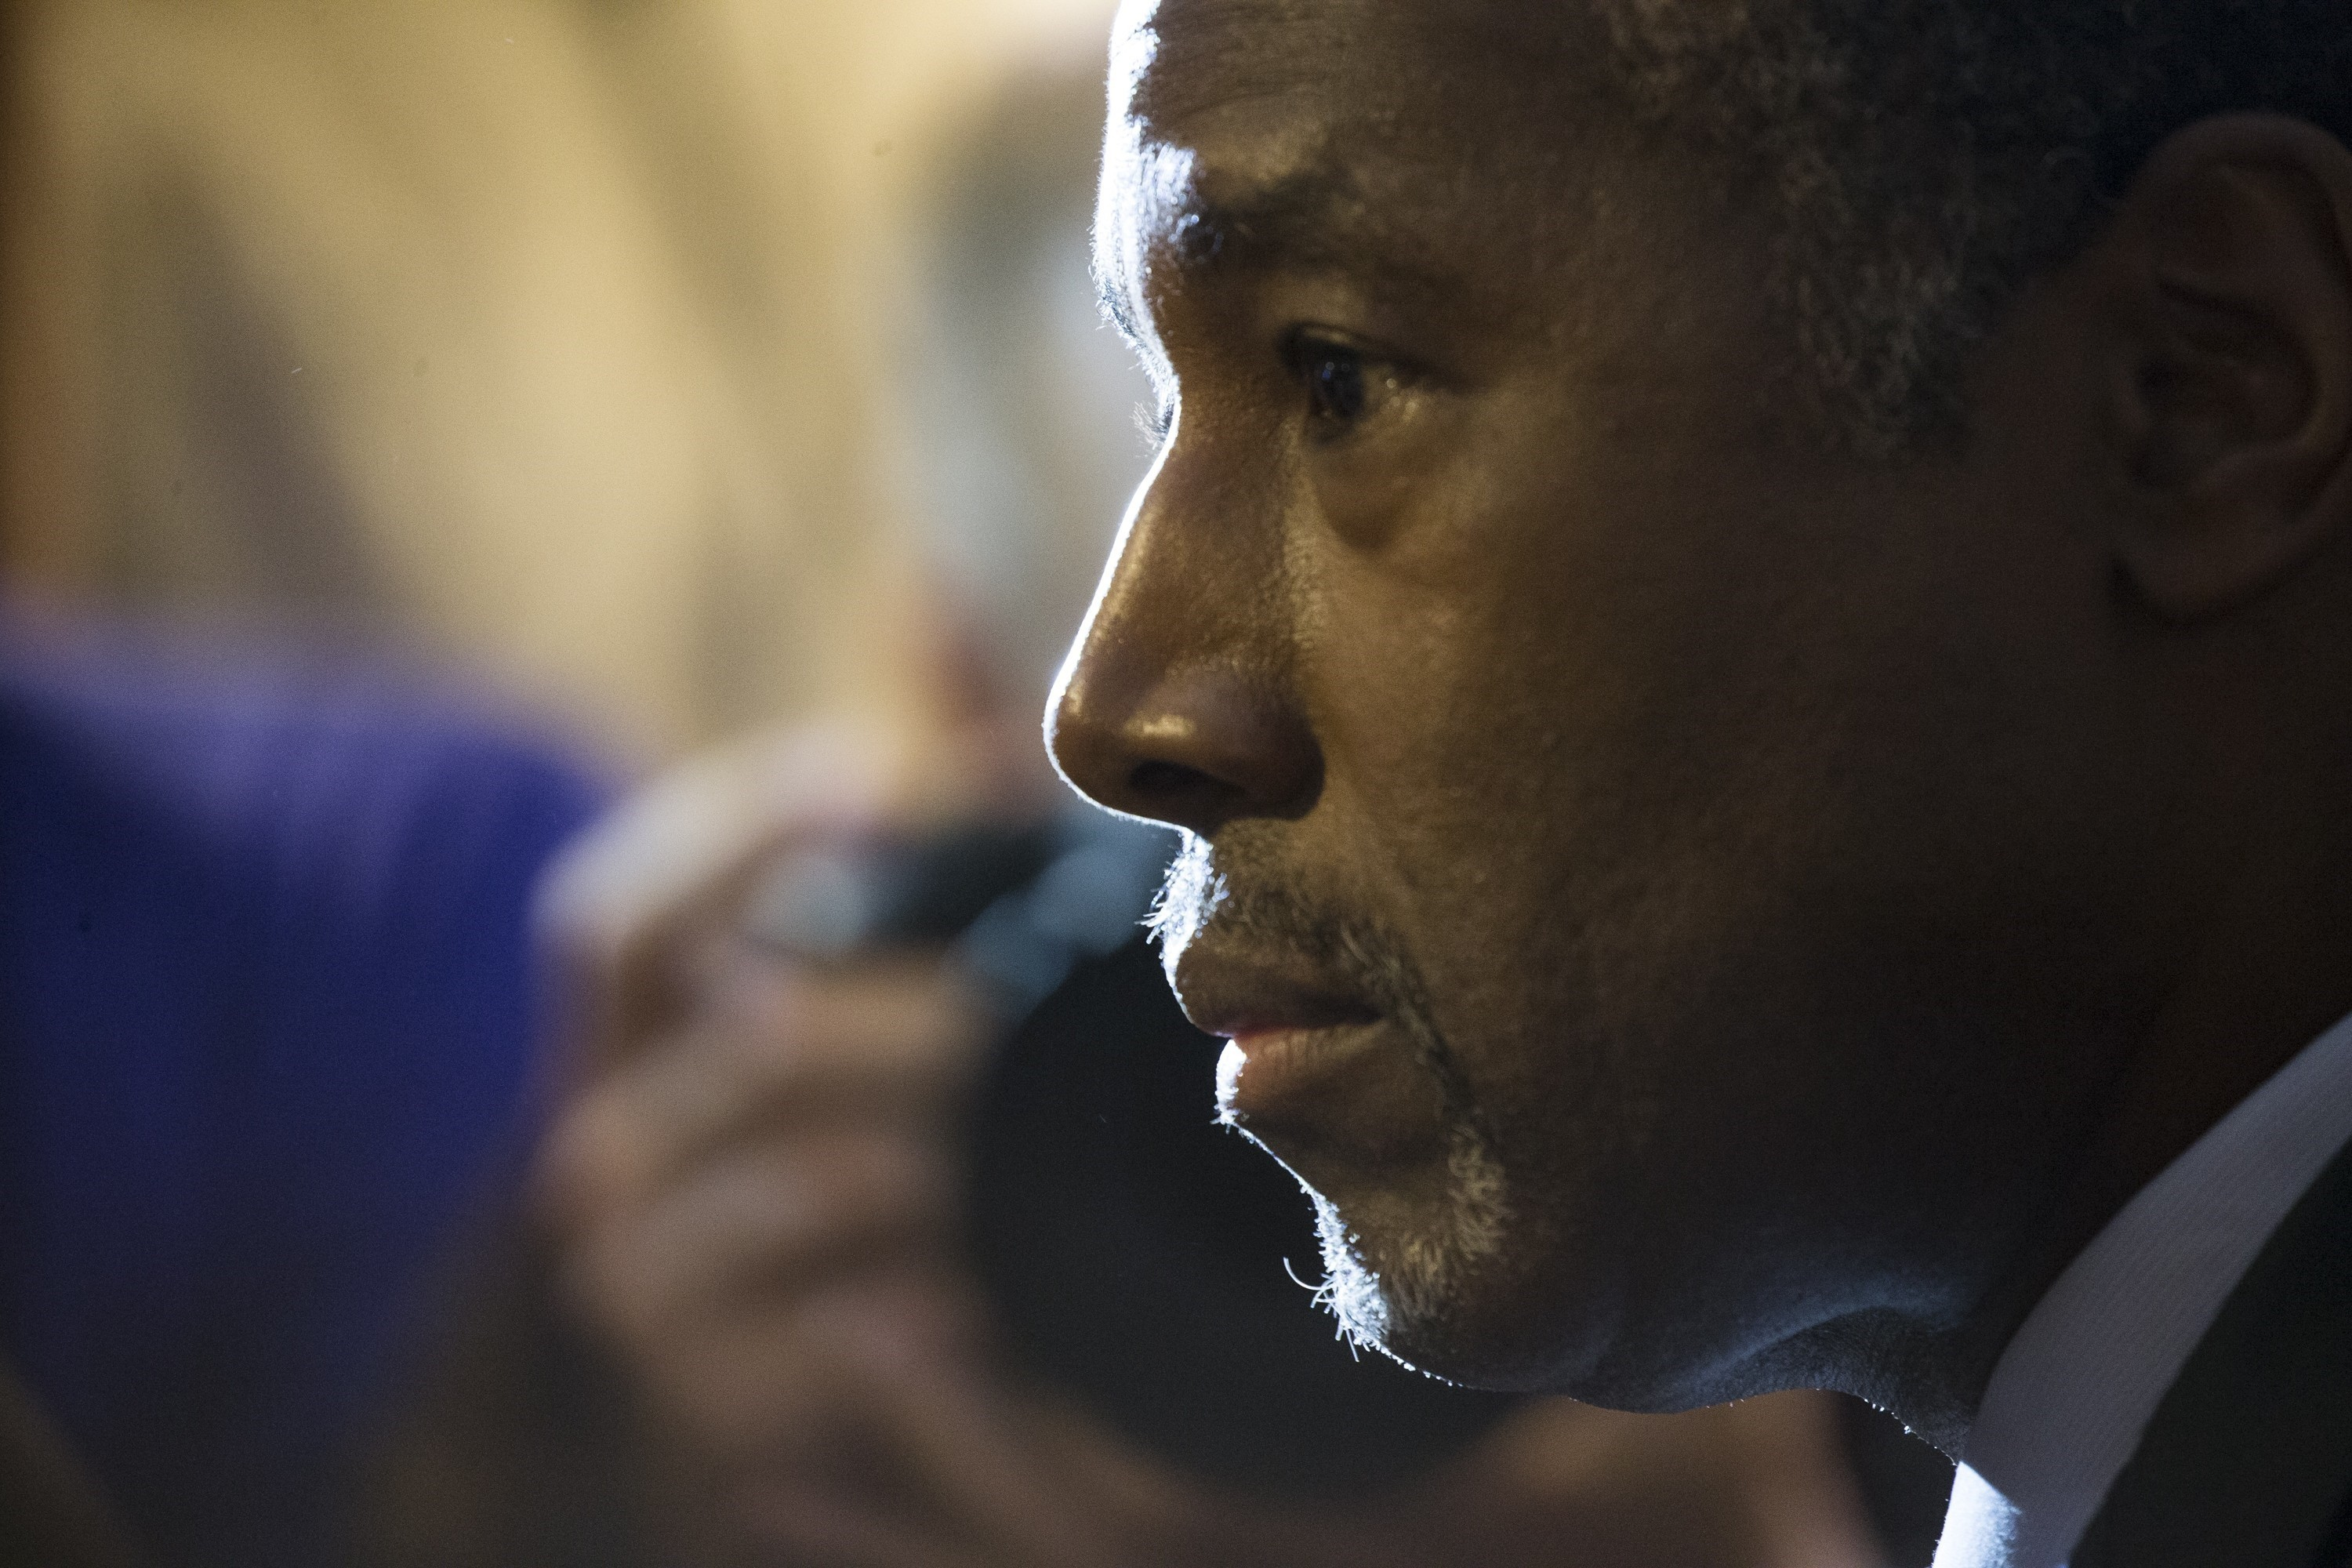 Ben Carson answers speaks to the media after speaking at a luncheon at the National Press Club in Washington, USA on Oct. 9, 2015.